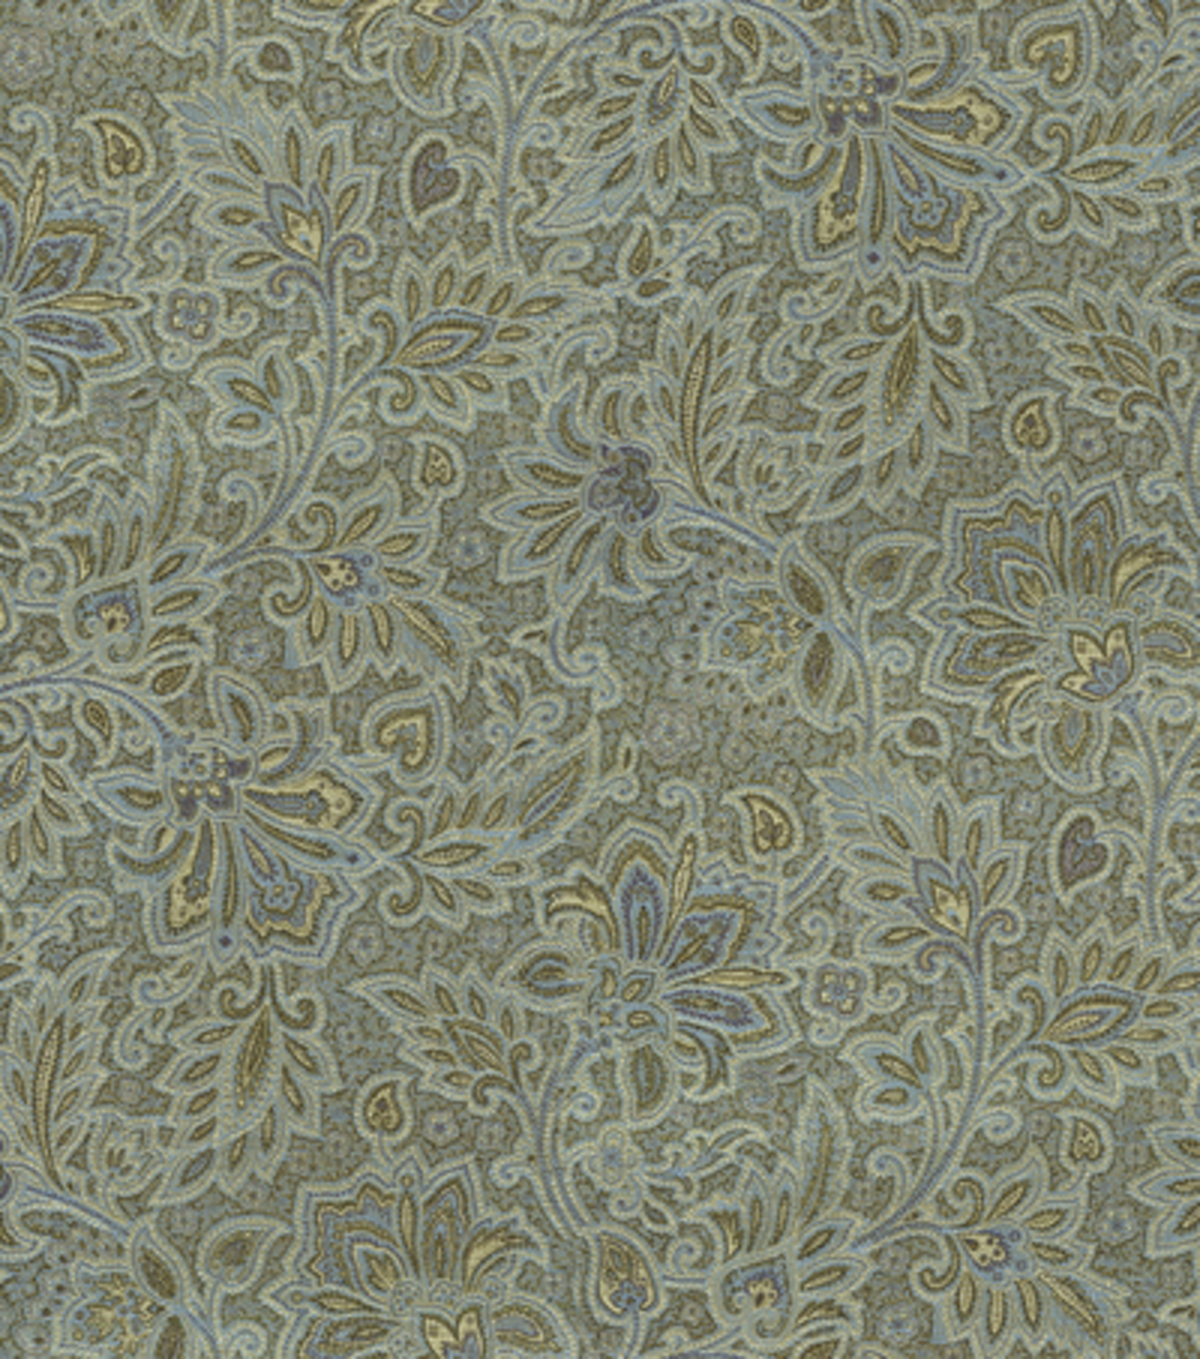 Home Decor 8\u0022x8\u0022 Fabric Swatch-Upholstery-Waverly Parlour Paisley/Blue Jay